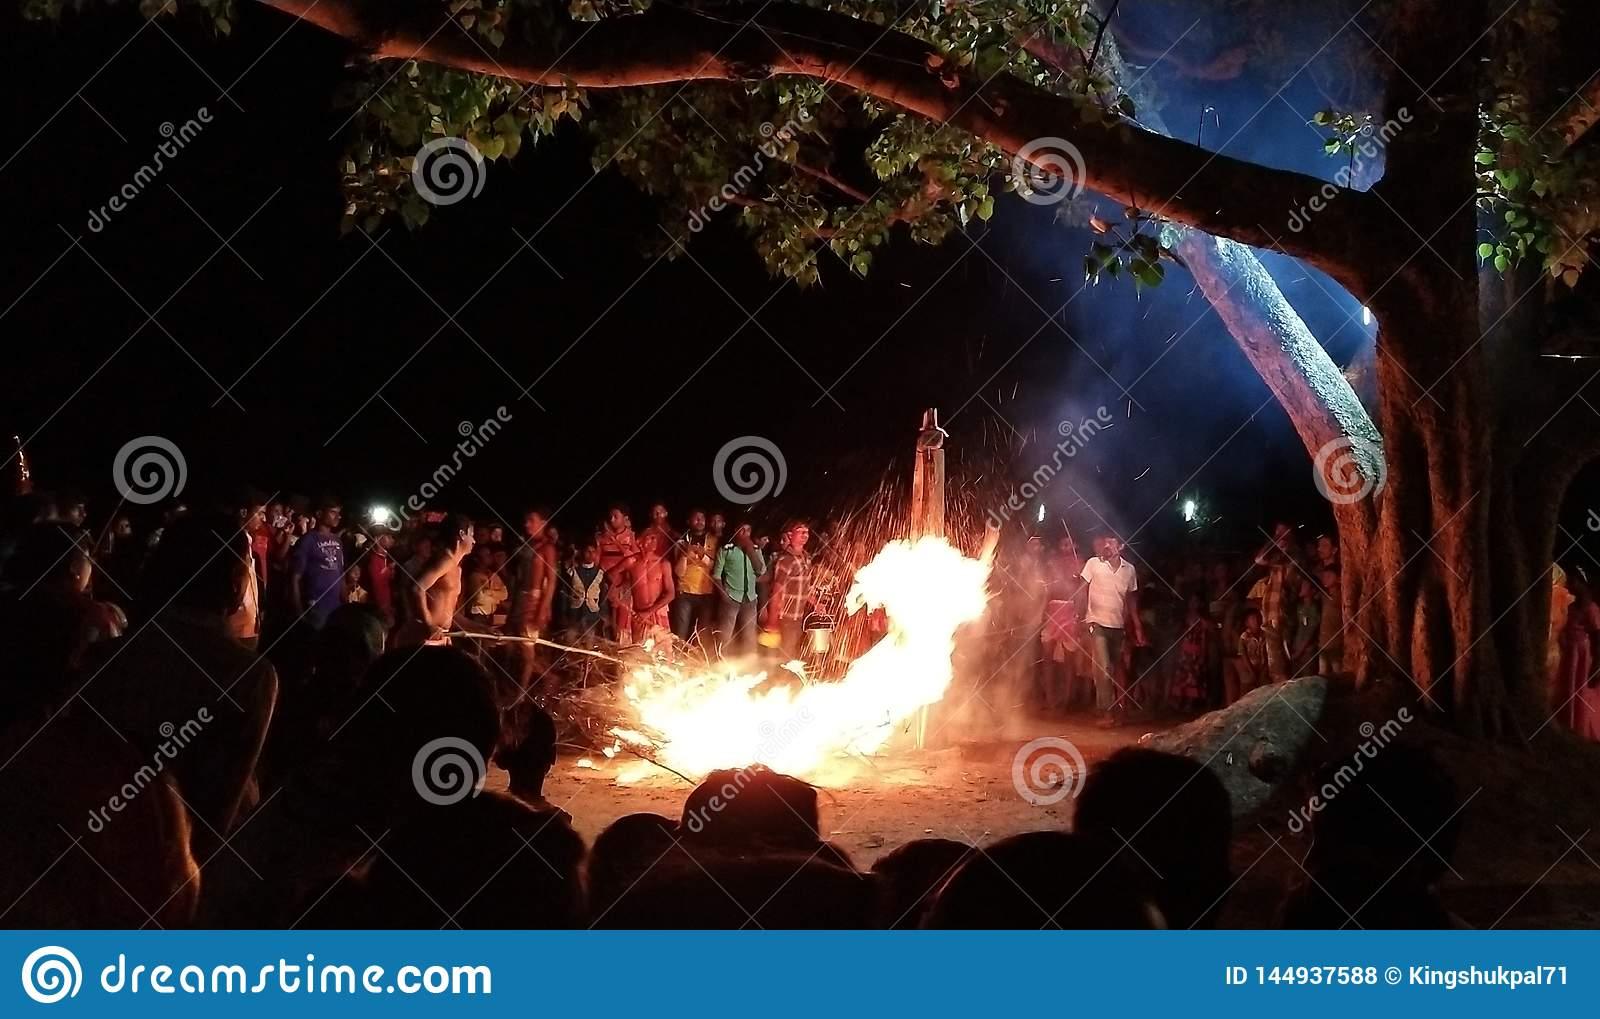 Celebrations With Fire, Religion Program, From India,West